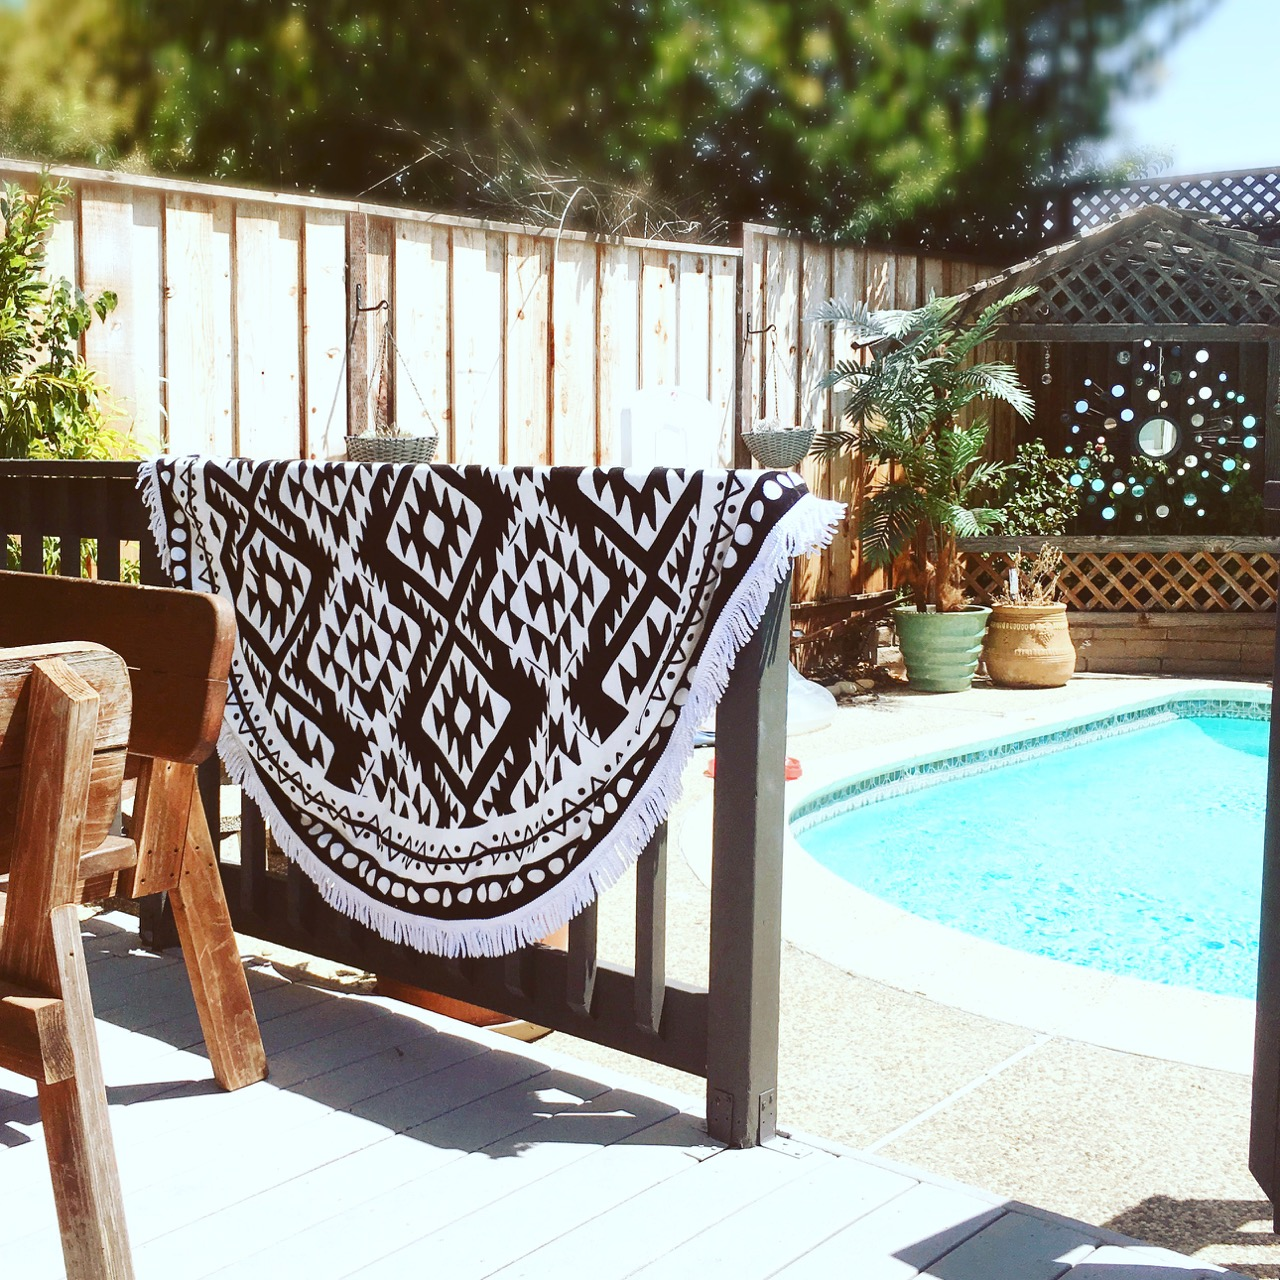 Beach Blanket At Costco: The Top 10 Best Costco Finds (That Aren't Food